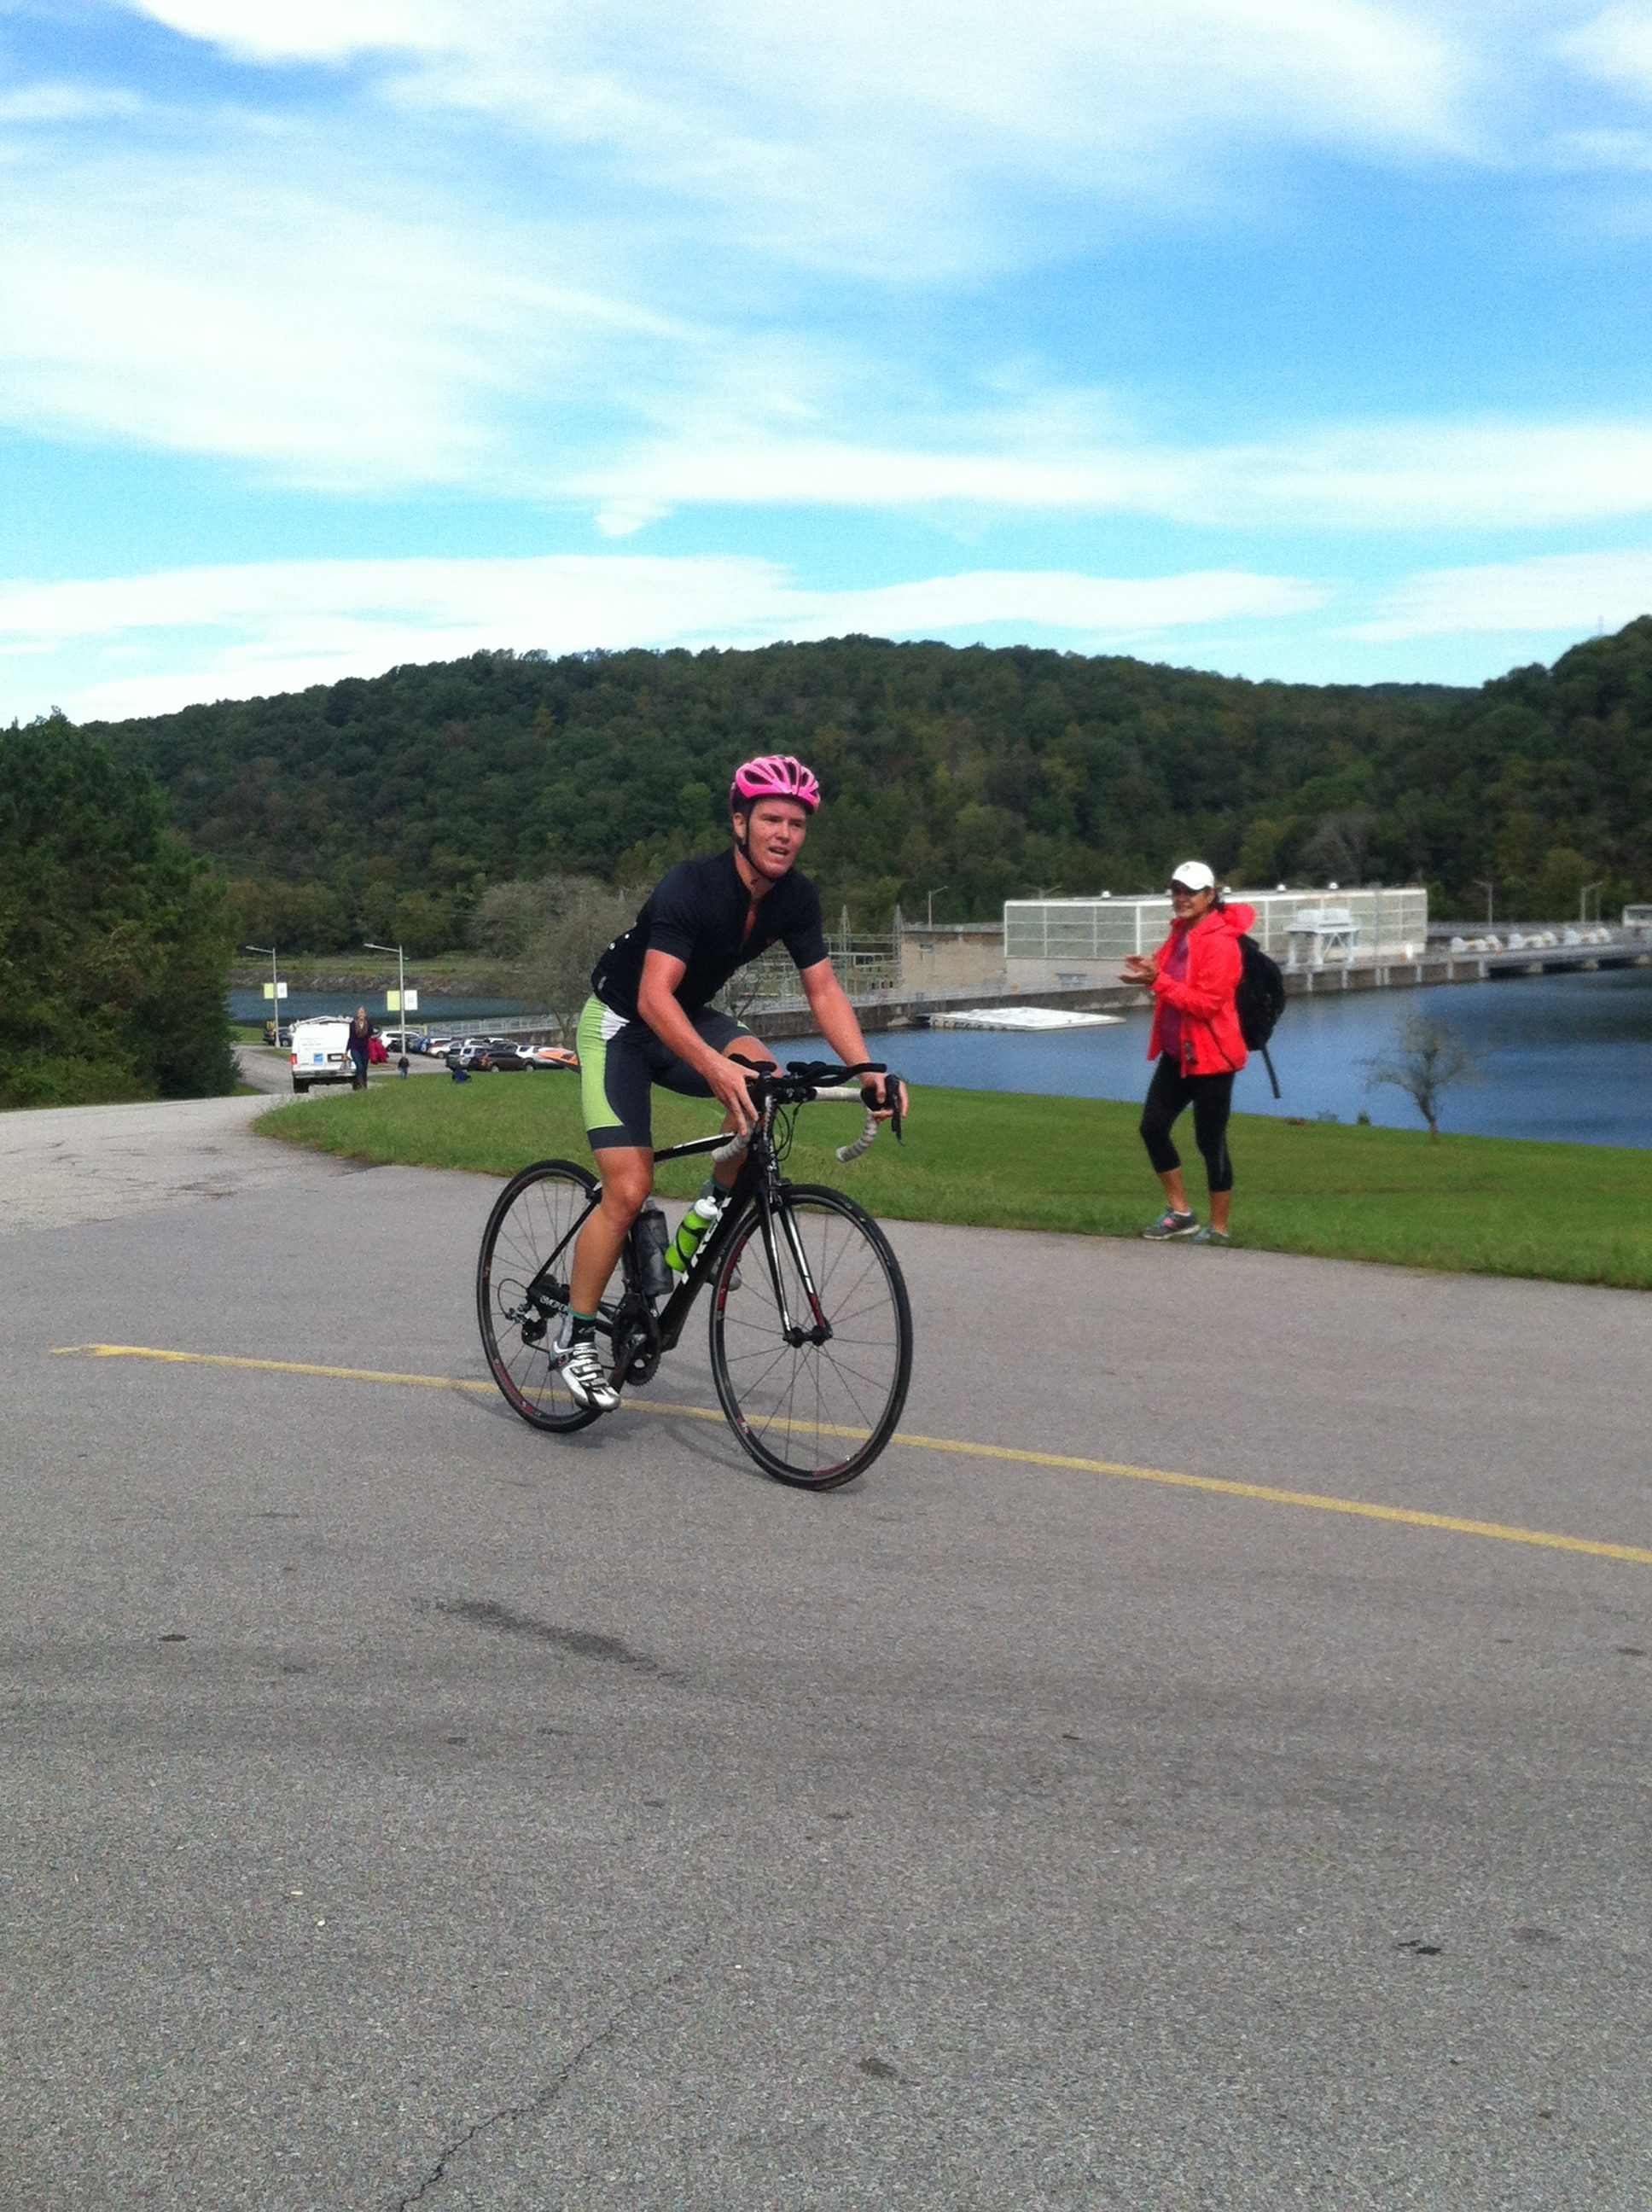 Senior Gears Up for Cycling Future